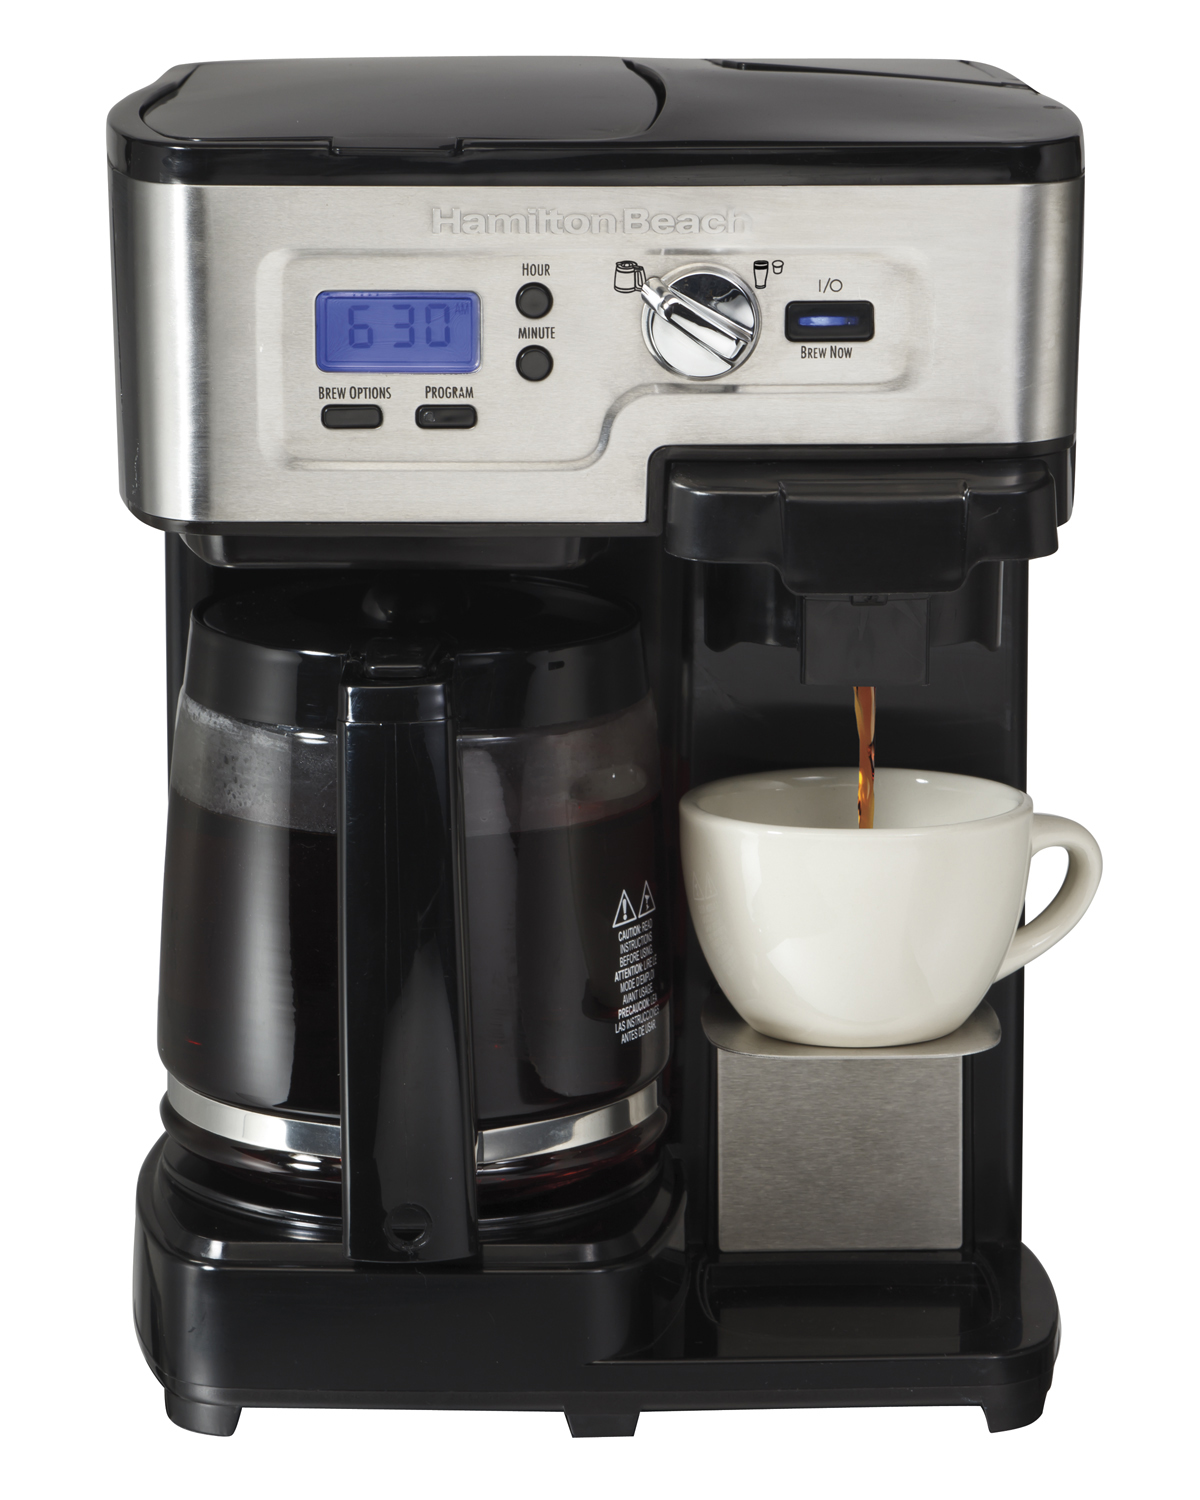 49983�Hamilton Beach 2-Way FlexBrew Coffee Maker | 49983